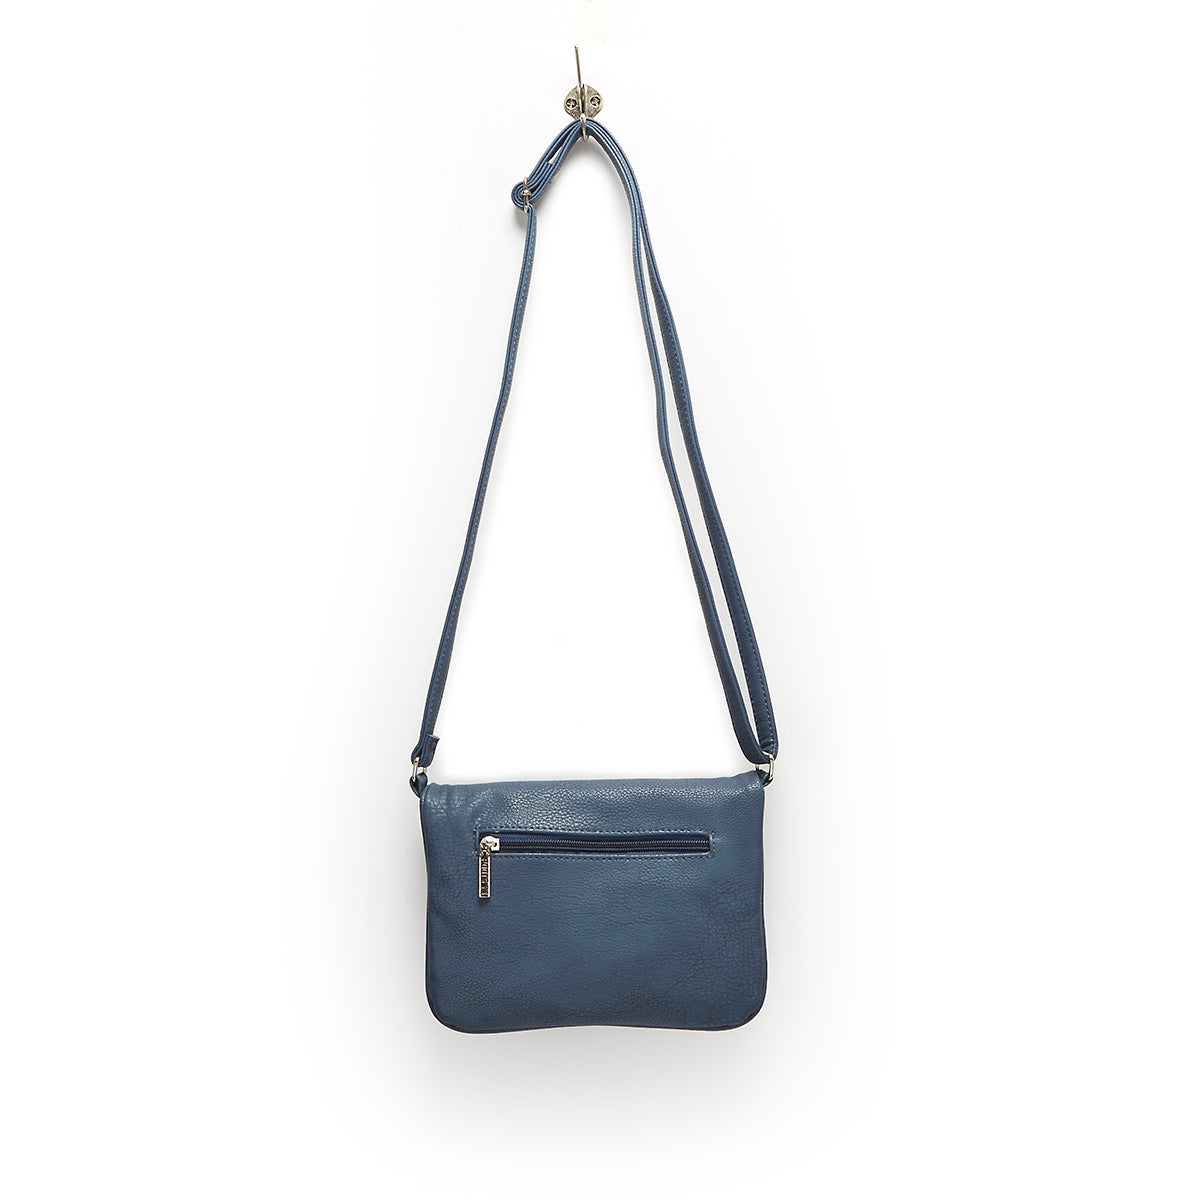 Lds Roots73 denm fold down crossbody bag